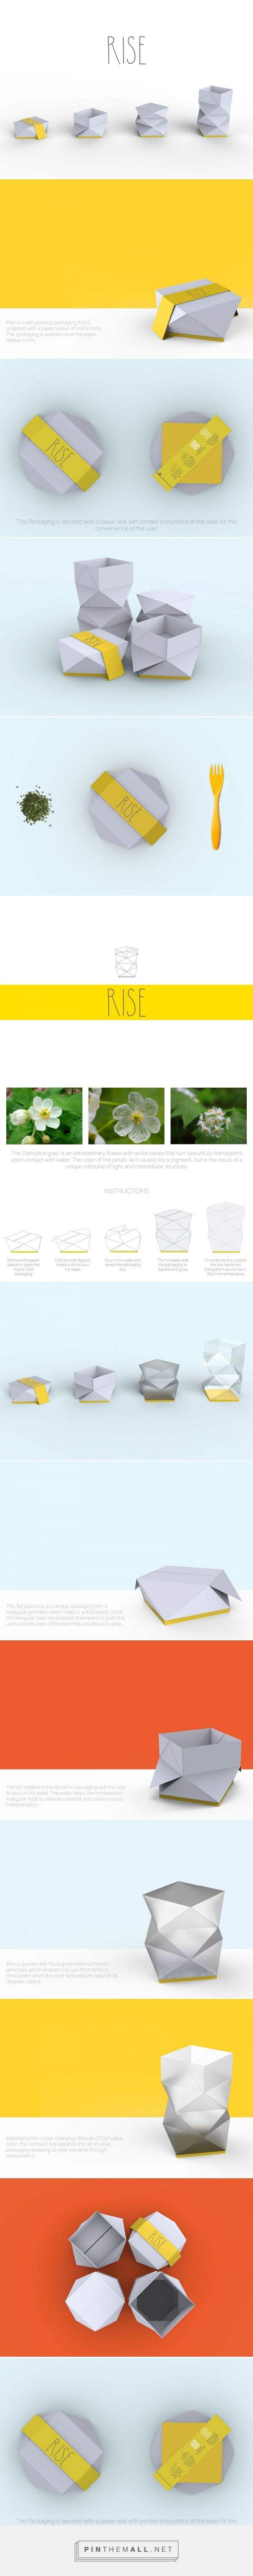 RISE (Student Project) - Packaging of the World - Creative Package Design Gallery - http://www.packagingoftheworld.com/2017/02/rise-student-project.html